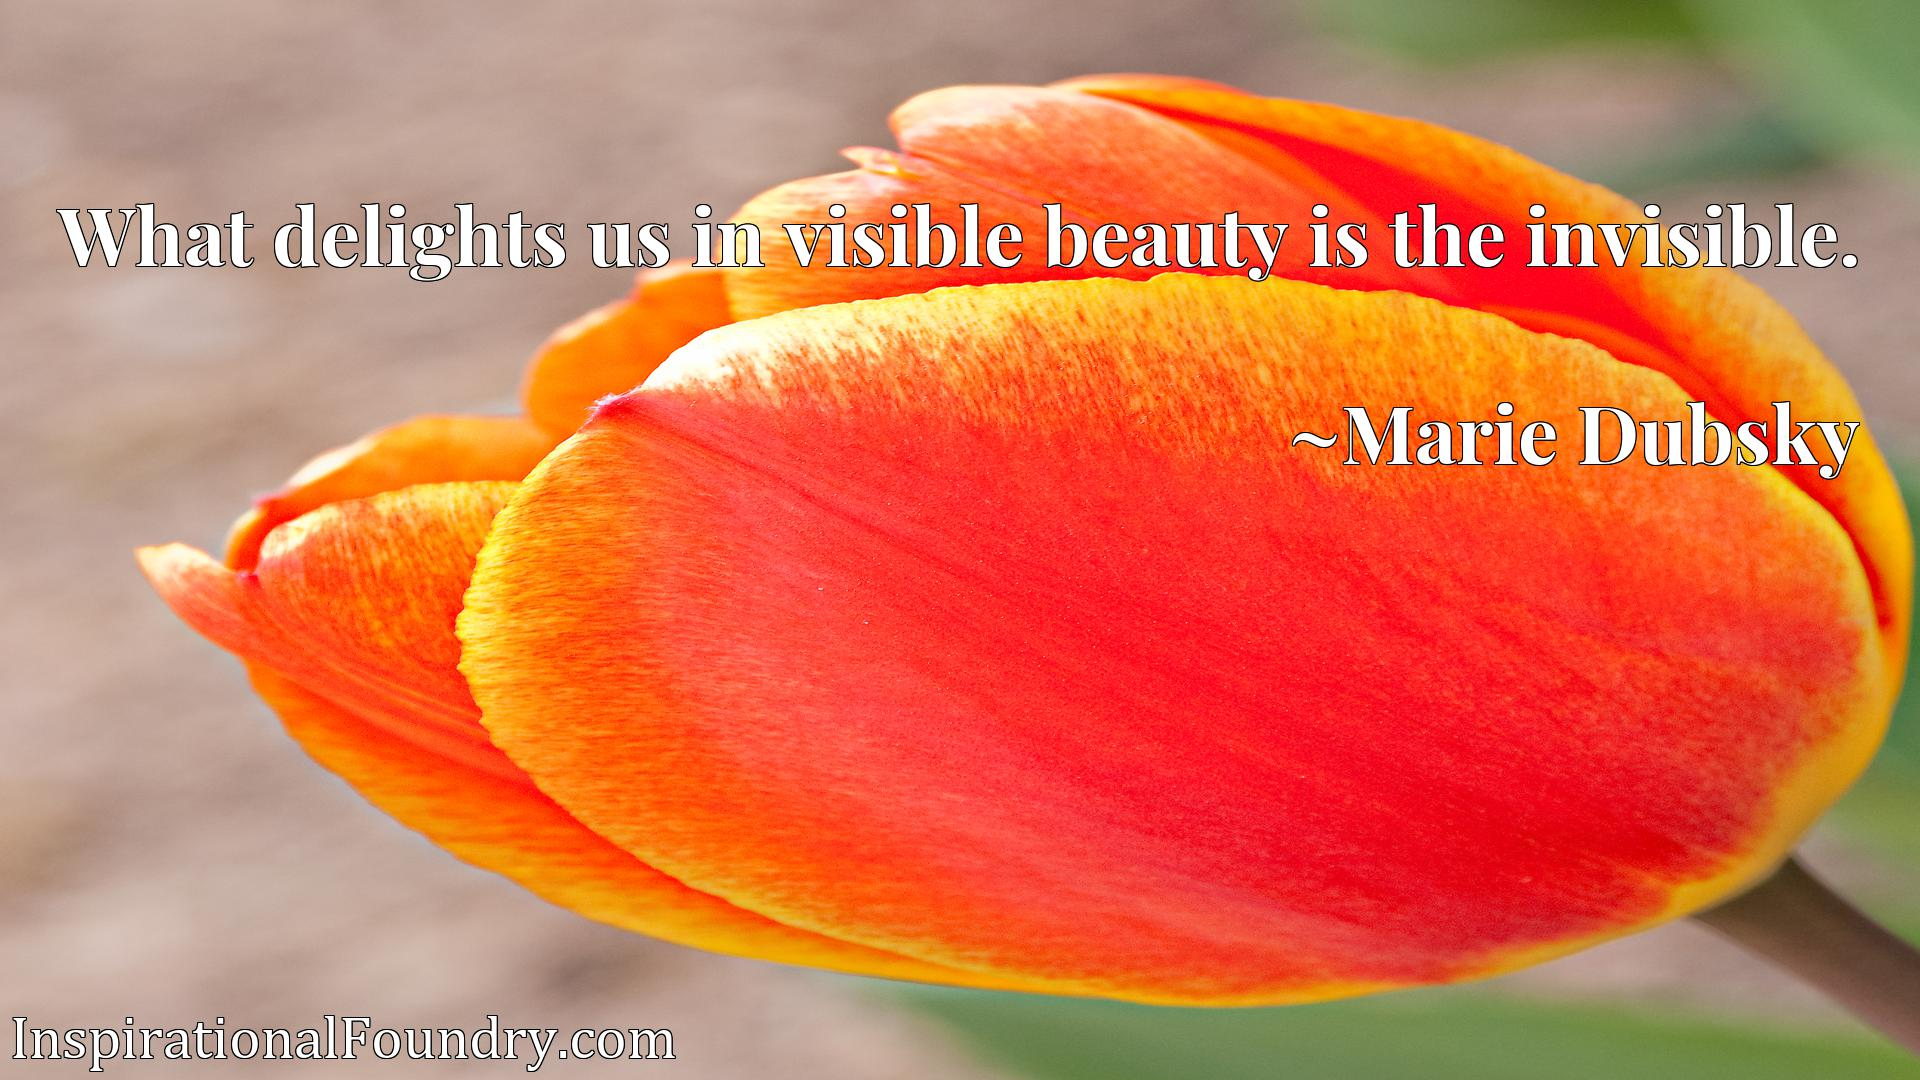 What delights us in visible beauty is the invisible.